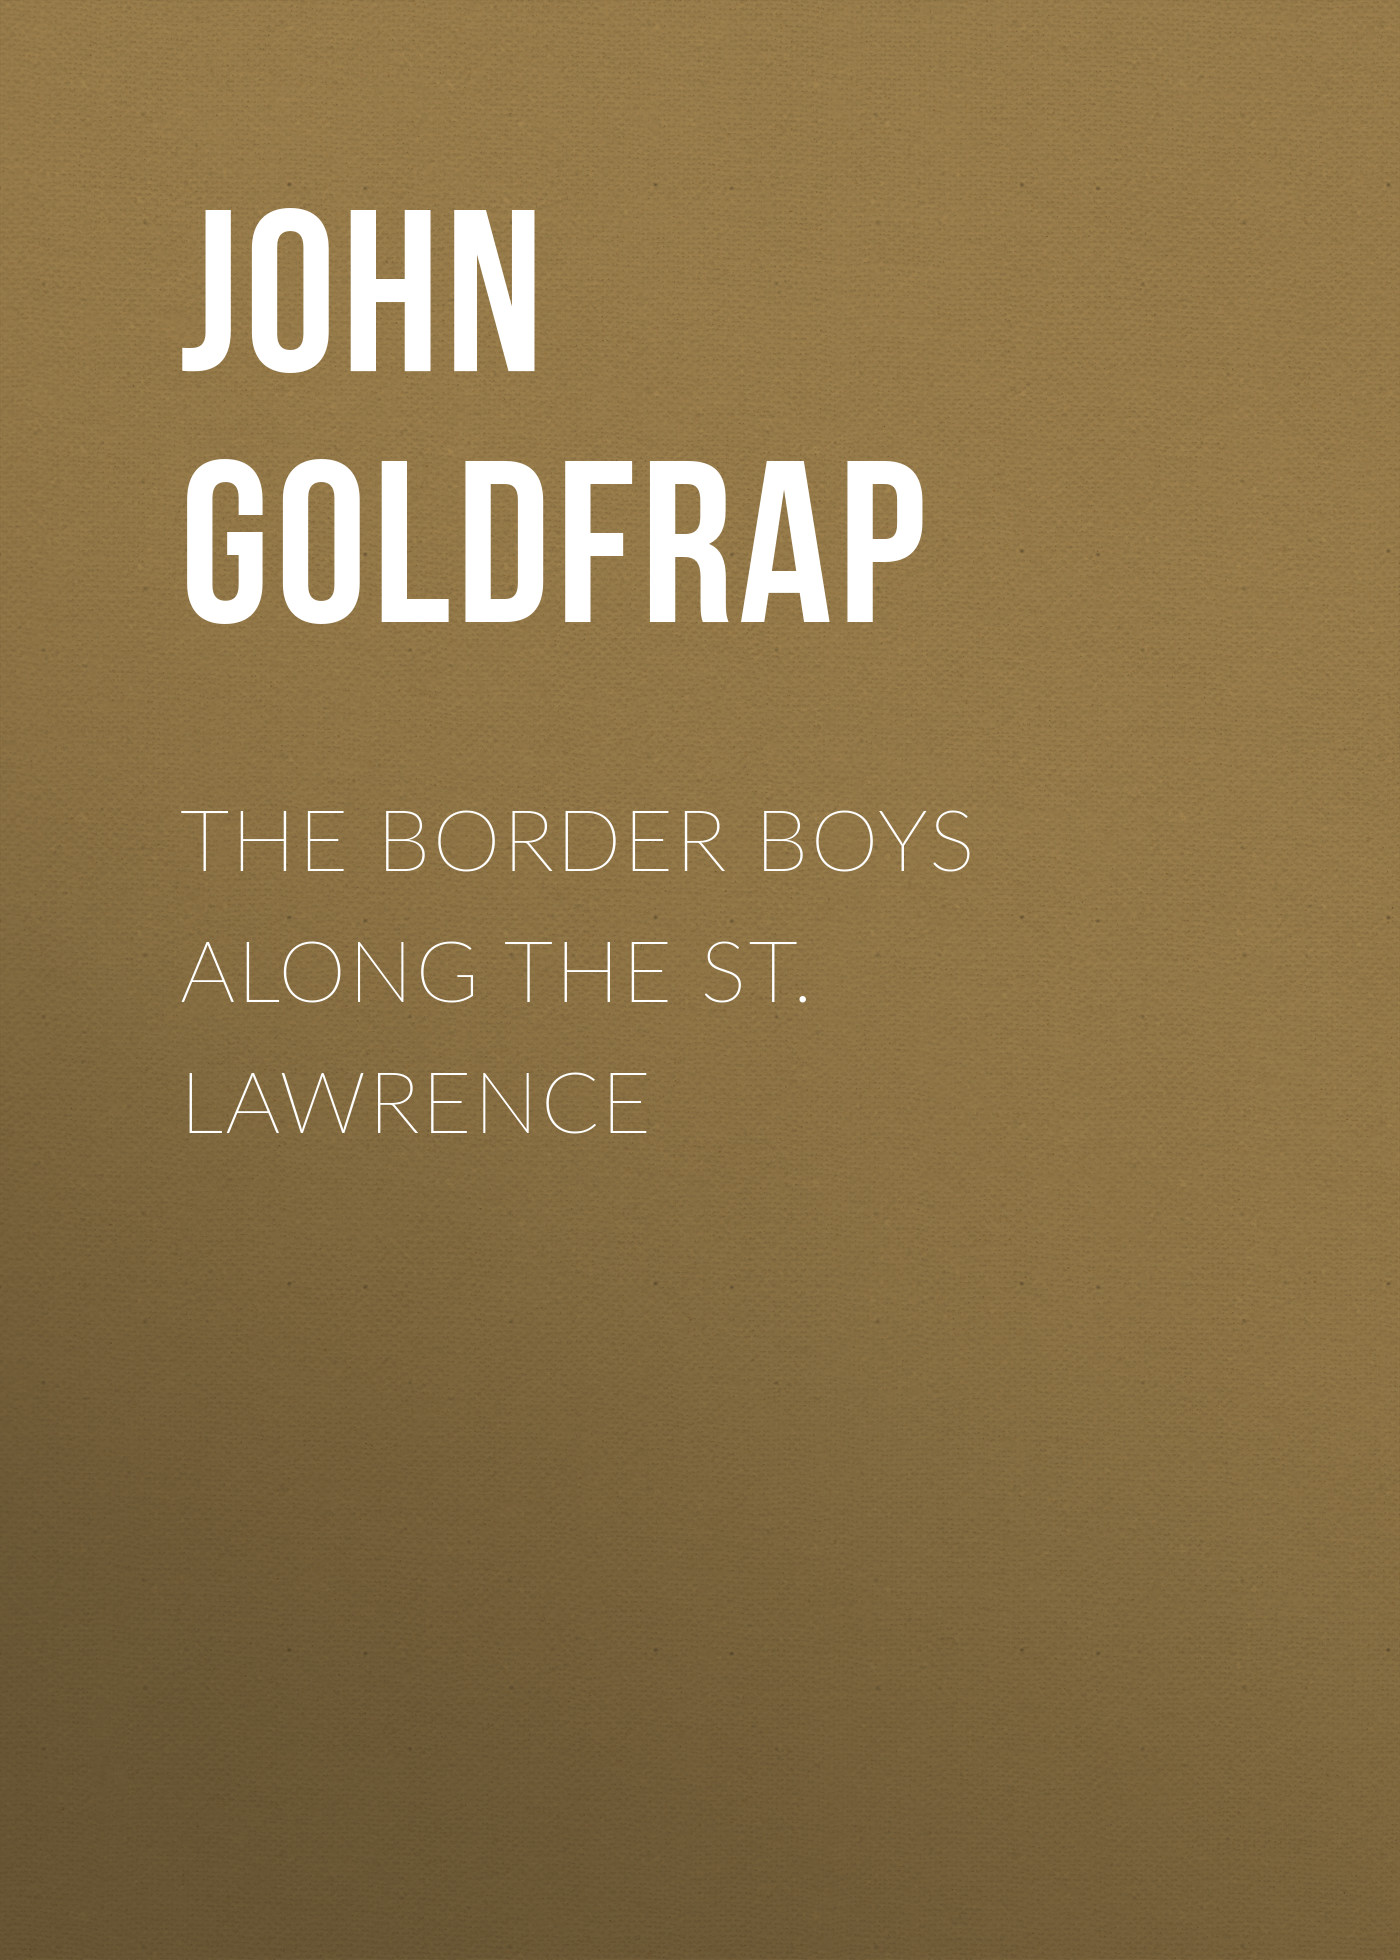 Goldfrap John Henry The Border Boys Along the St. Lawrence henry james the europeans